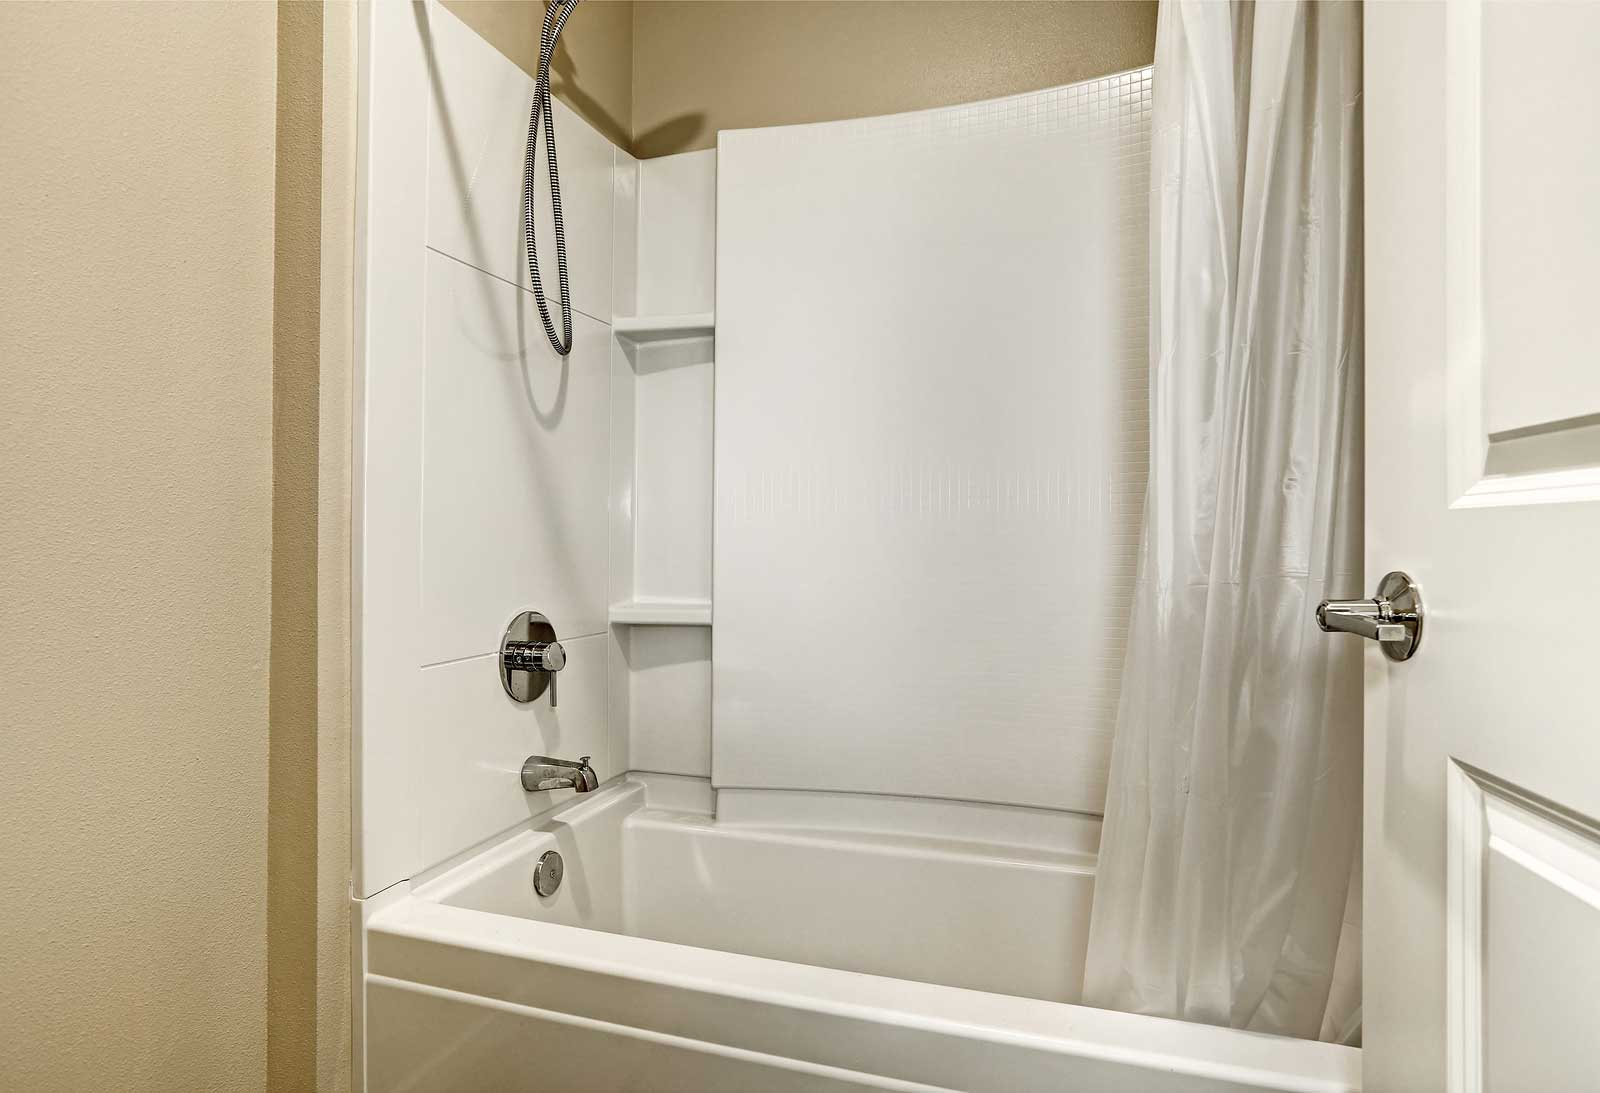 Fiberglass Bathtub  Shower Repair Experts in St Charles IL